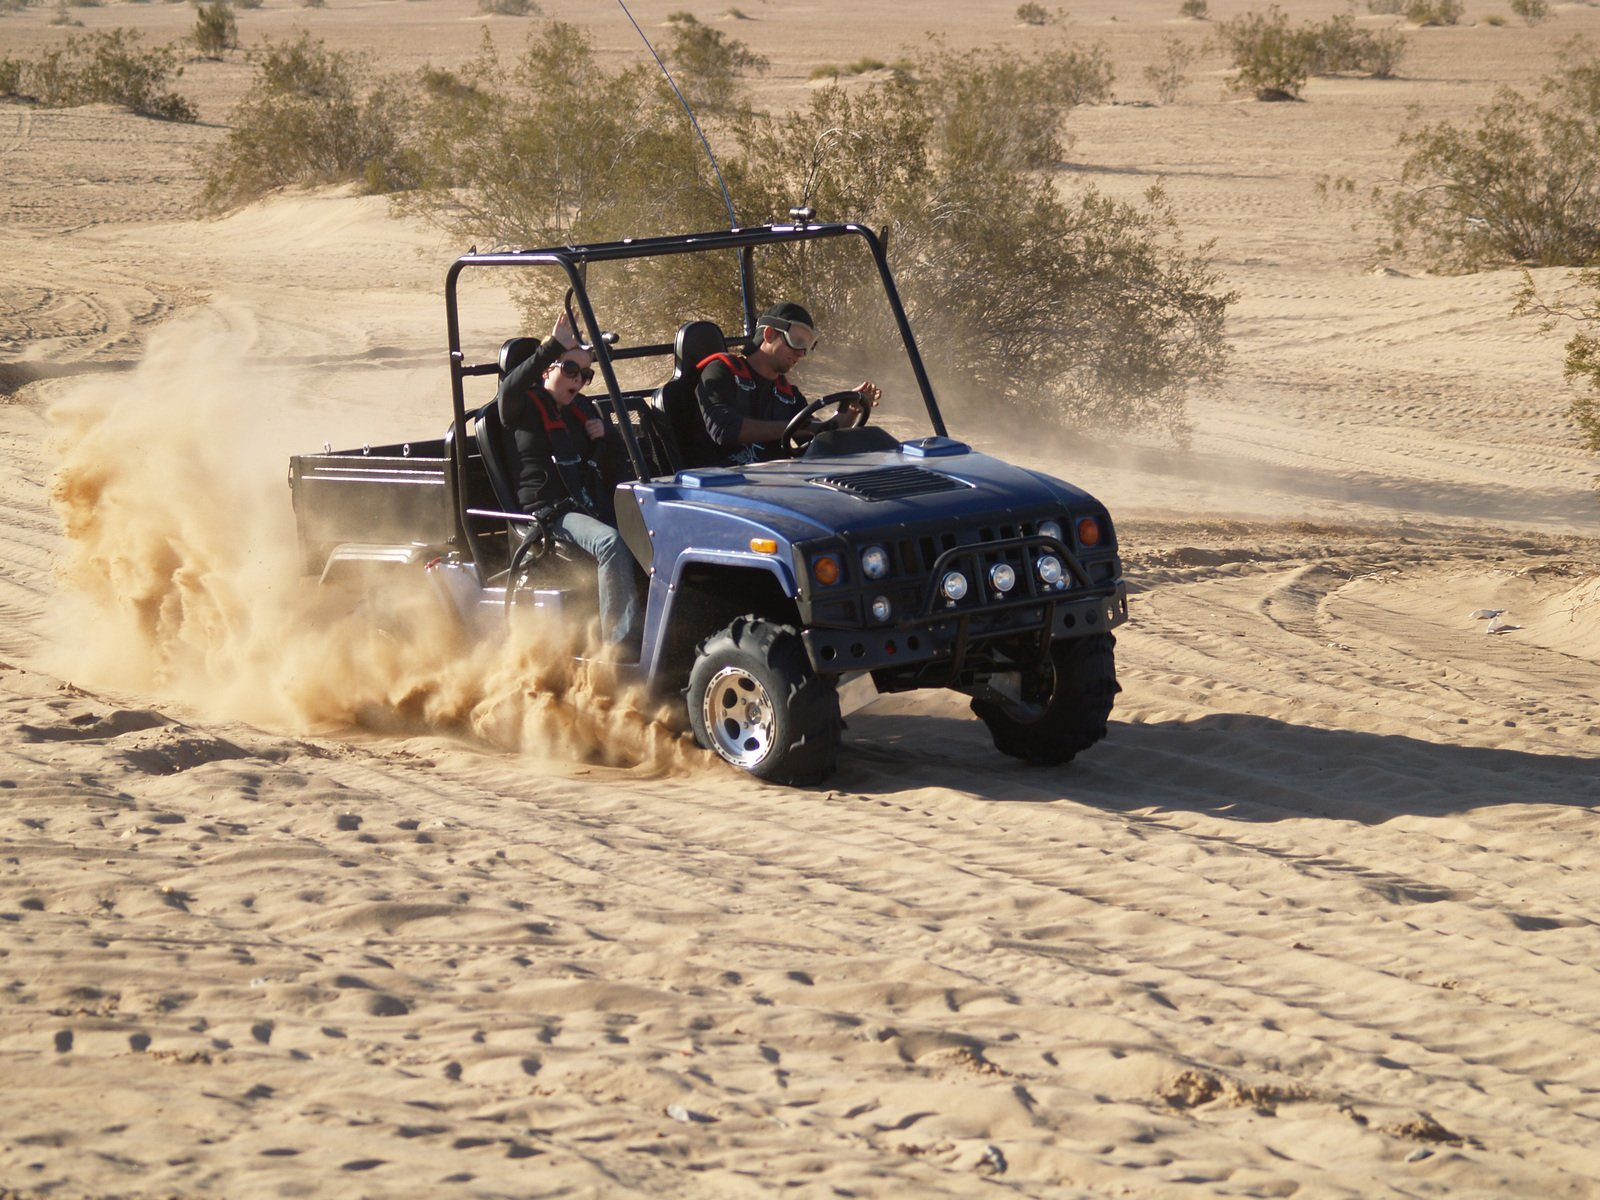 Places to drive your ATV in ColoradoInformation on Colorado ATV and UTV laws